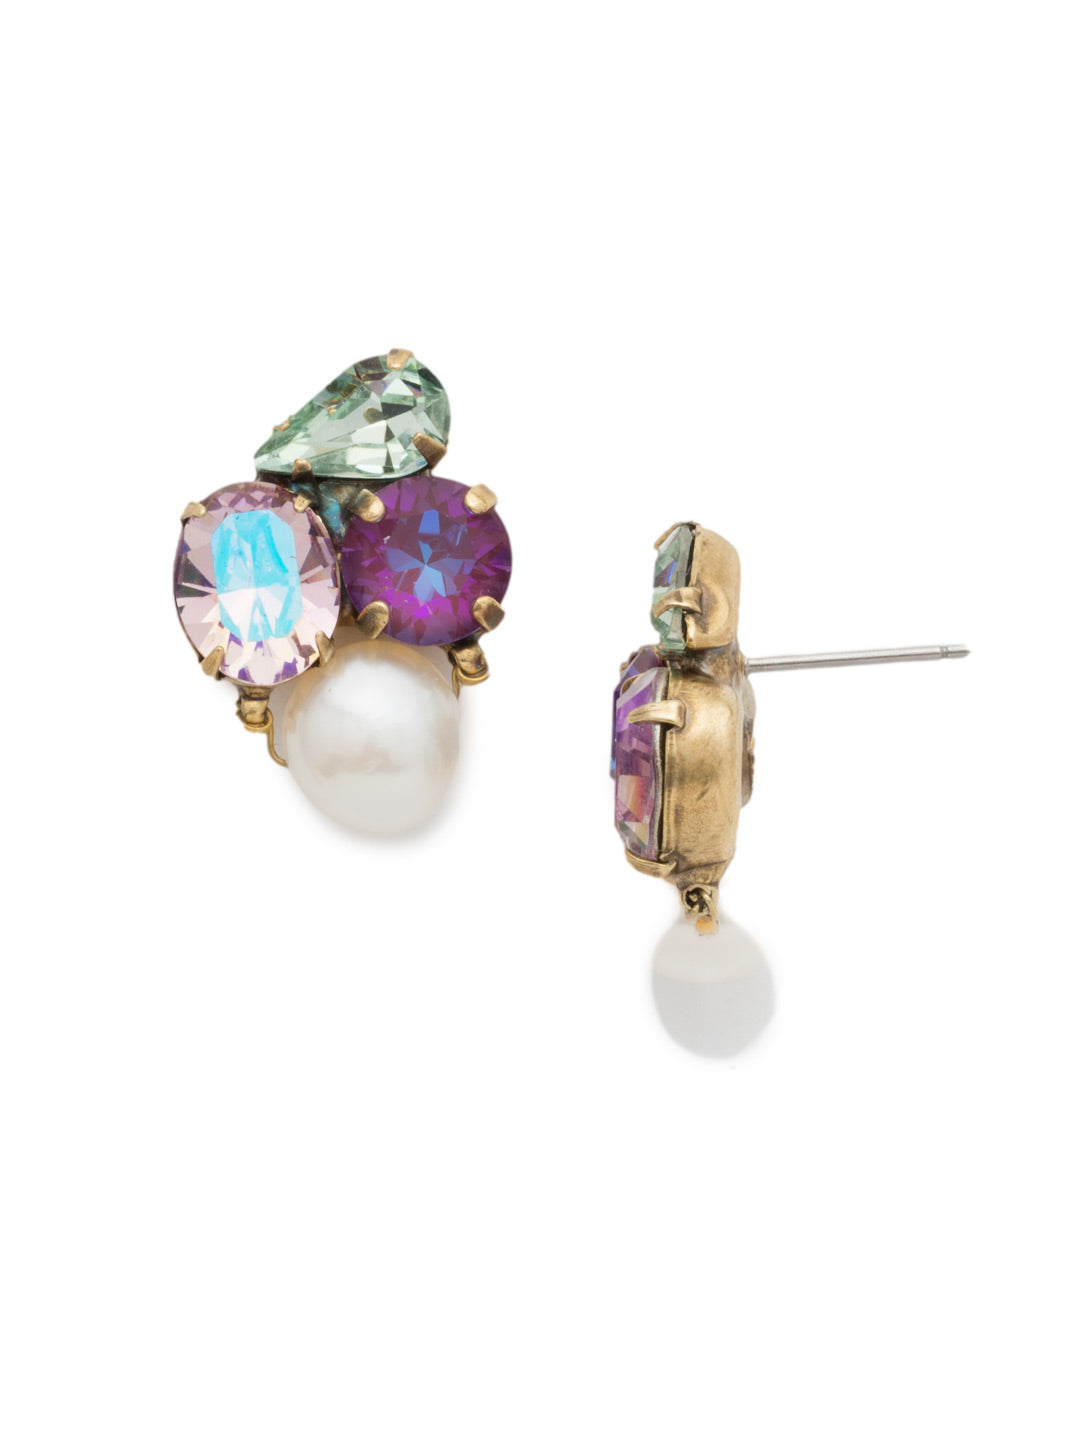 Aziza Stud Earrings - EEK18AGIRB